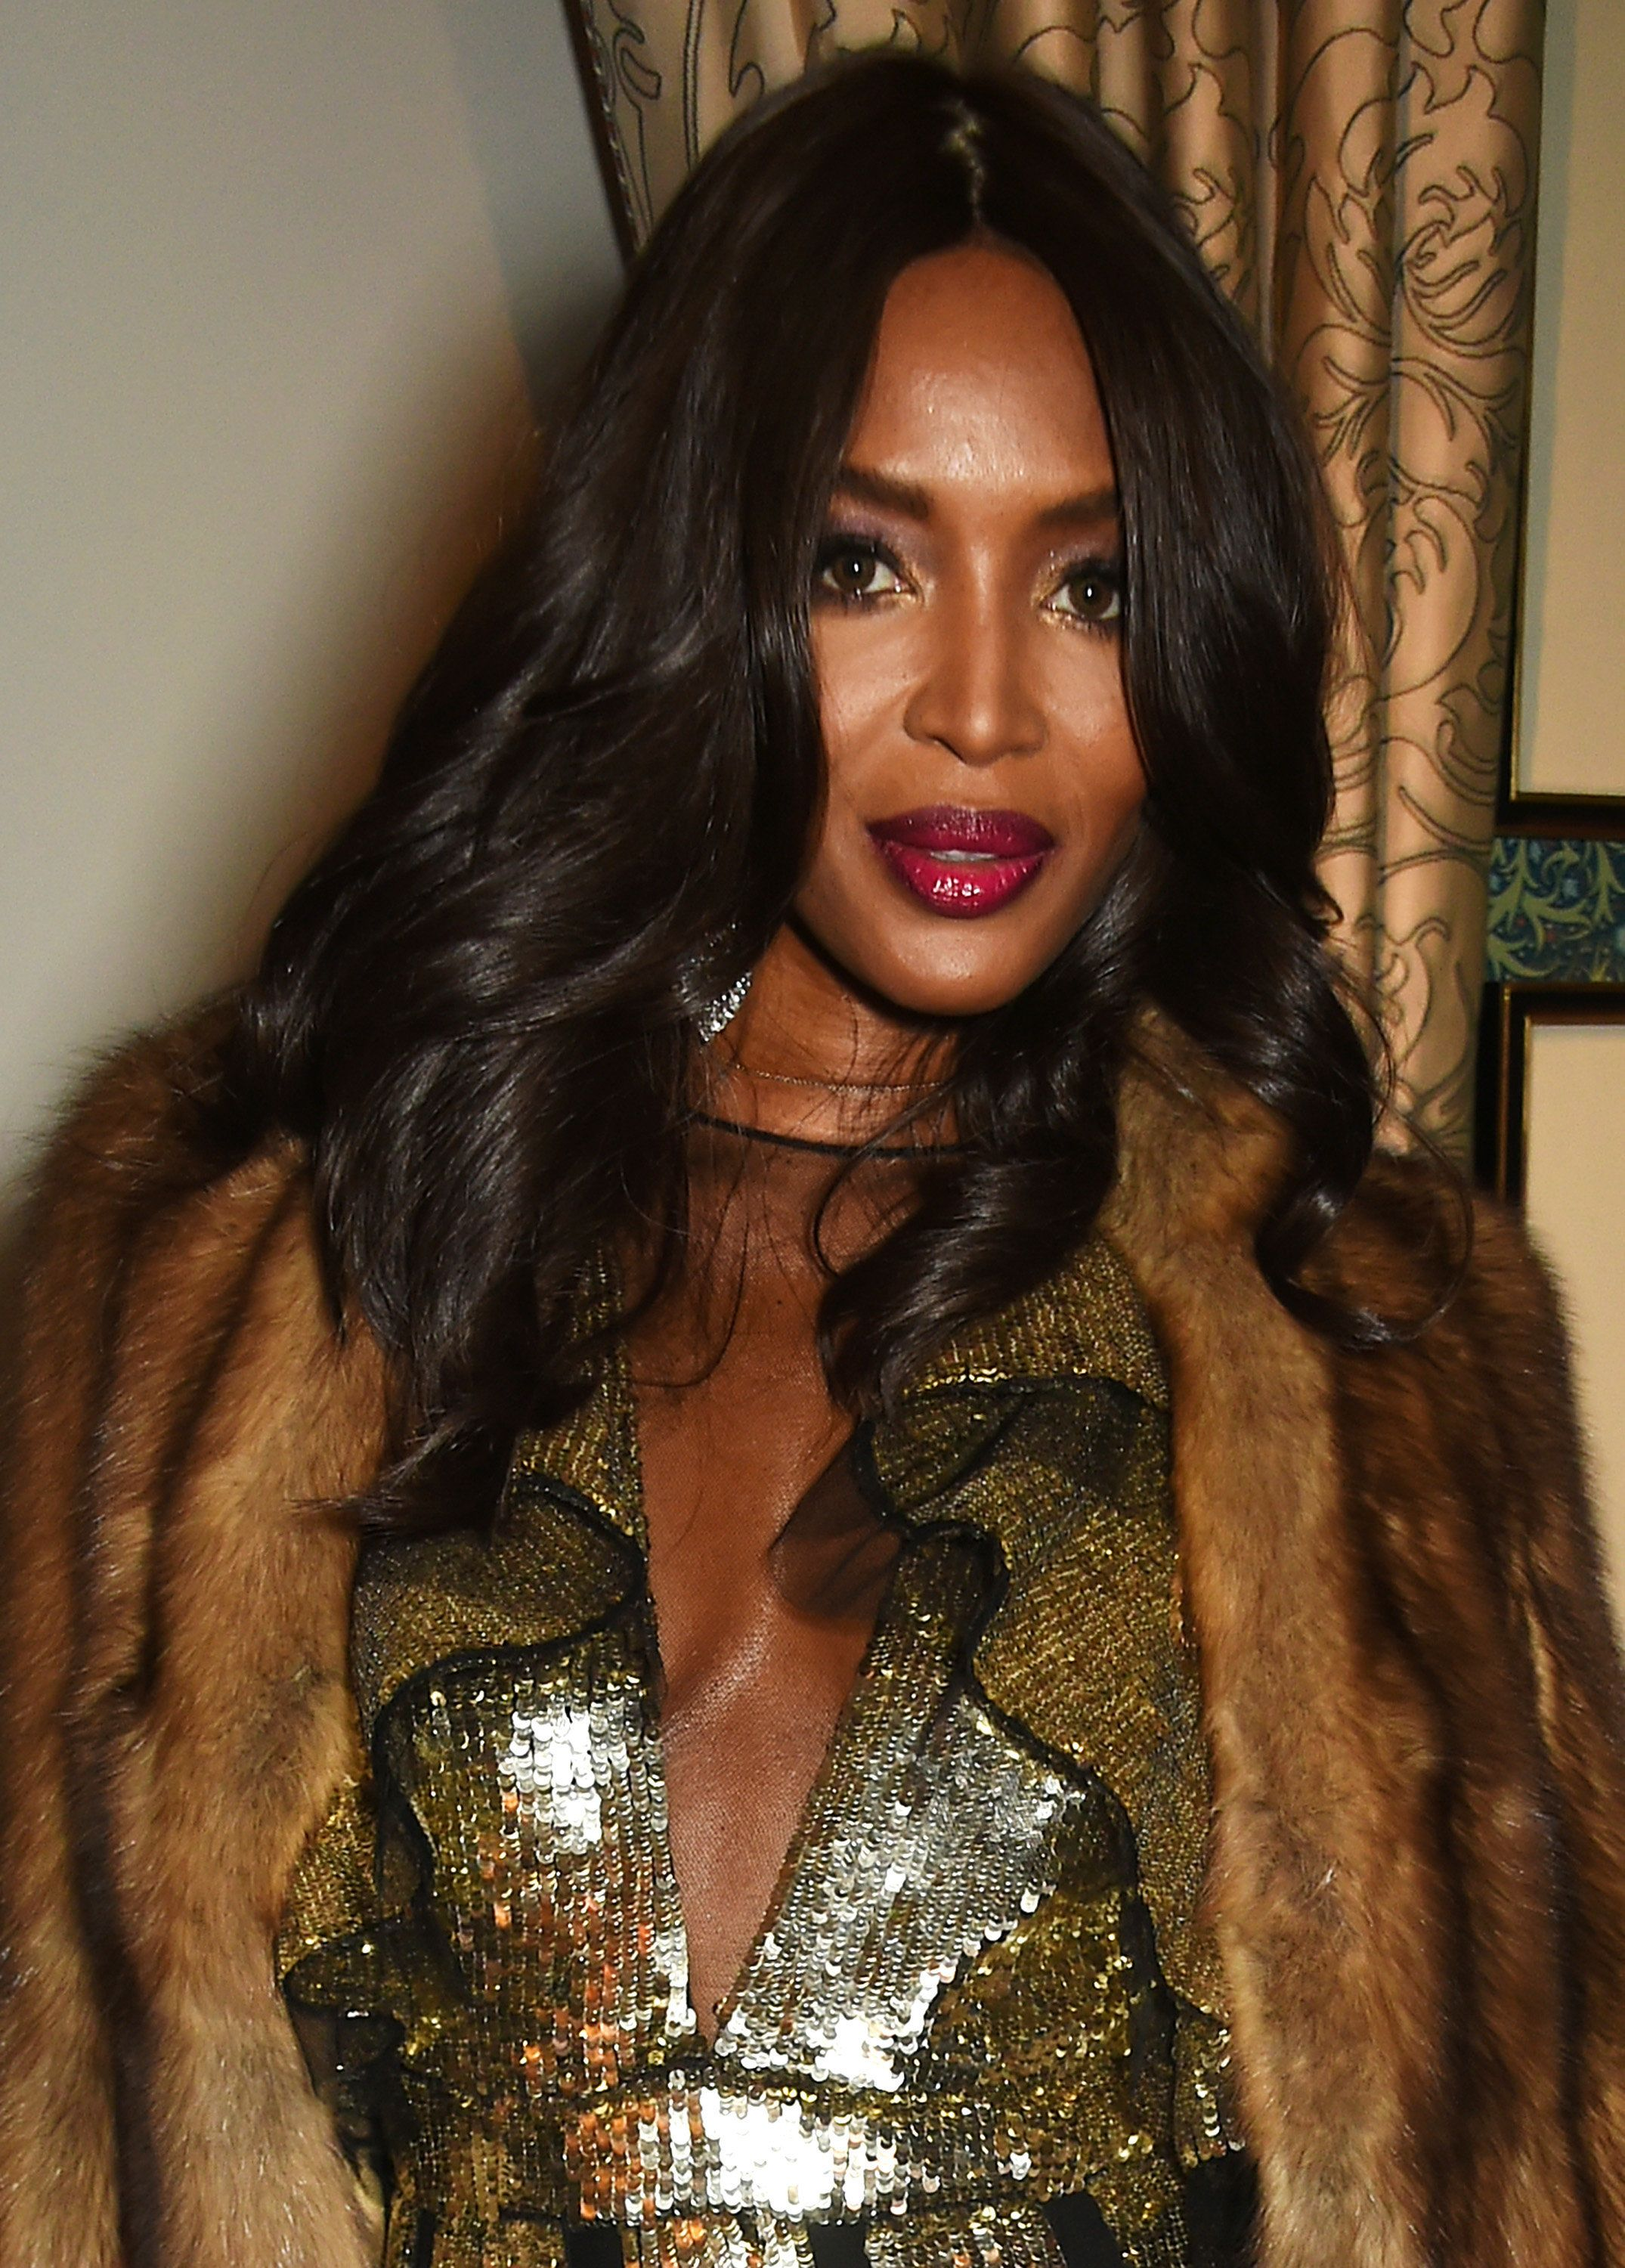 LONDON, ENGLAND - OCTOBER 27:  Naomi Campbell attends Edward Enninful's OBE dinner at Mark's Club on October 27, 2016 in London, England.  (Photo by David M. Benett/Dave Benett/Getty Images for Edward Enninful)